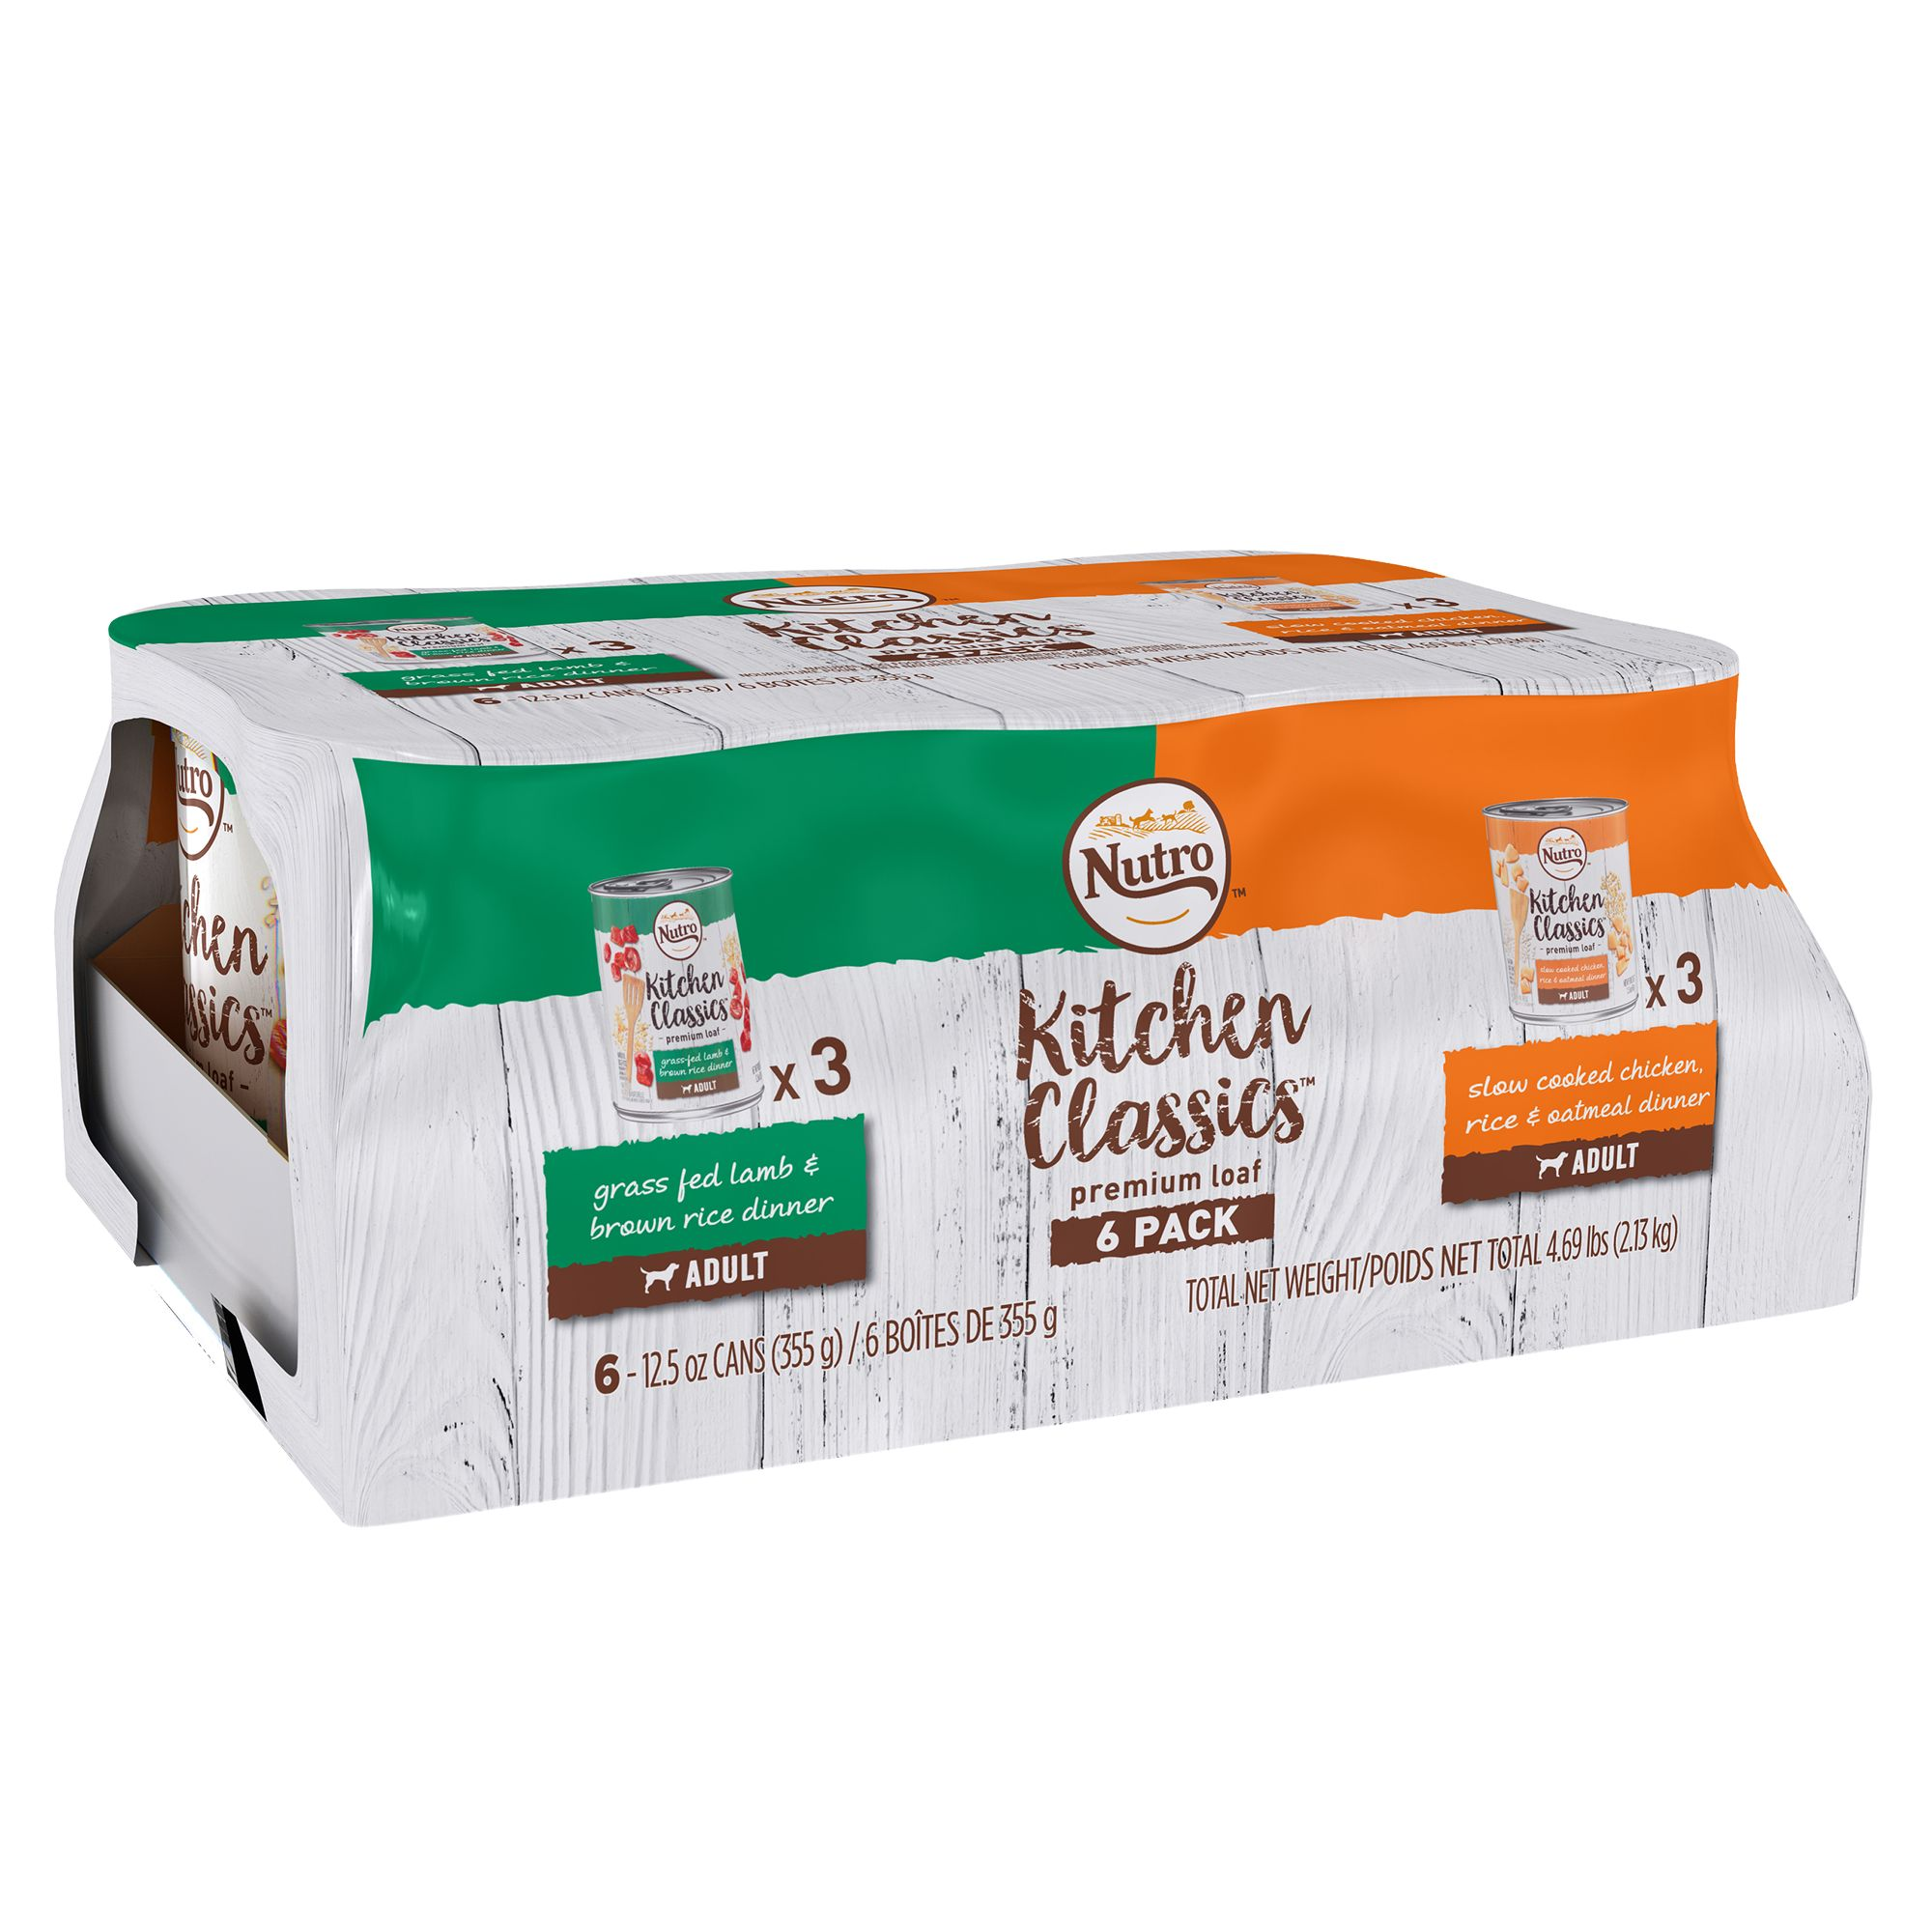 Nutro Kitchen Classics Adult Dog Food Natural Lamb And Chicken Variety Pack 6ct